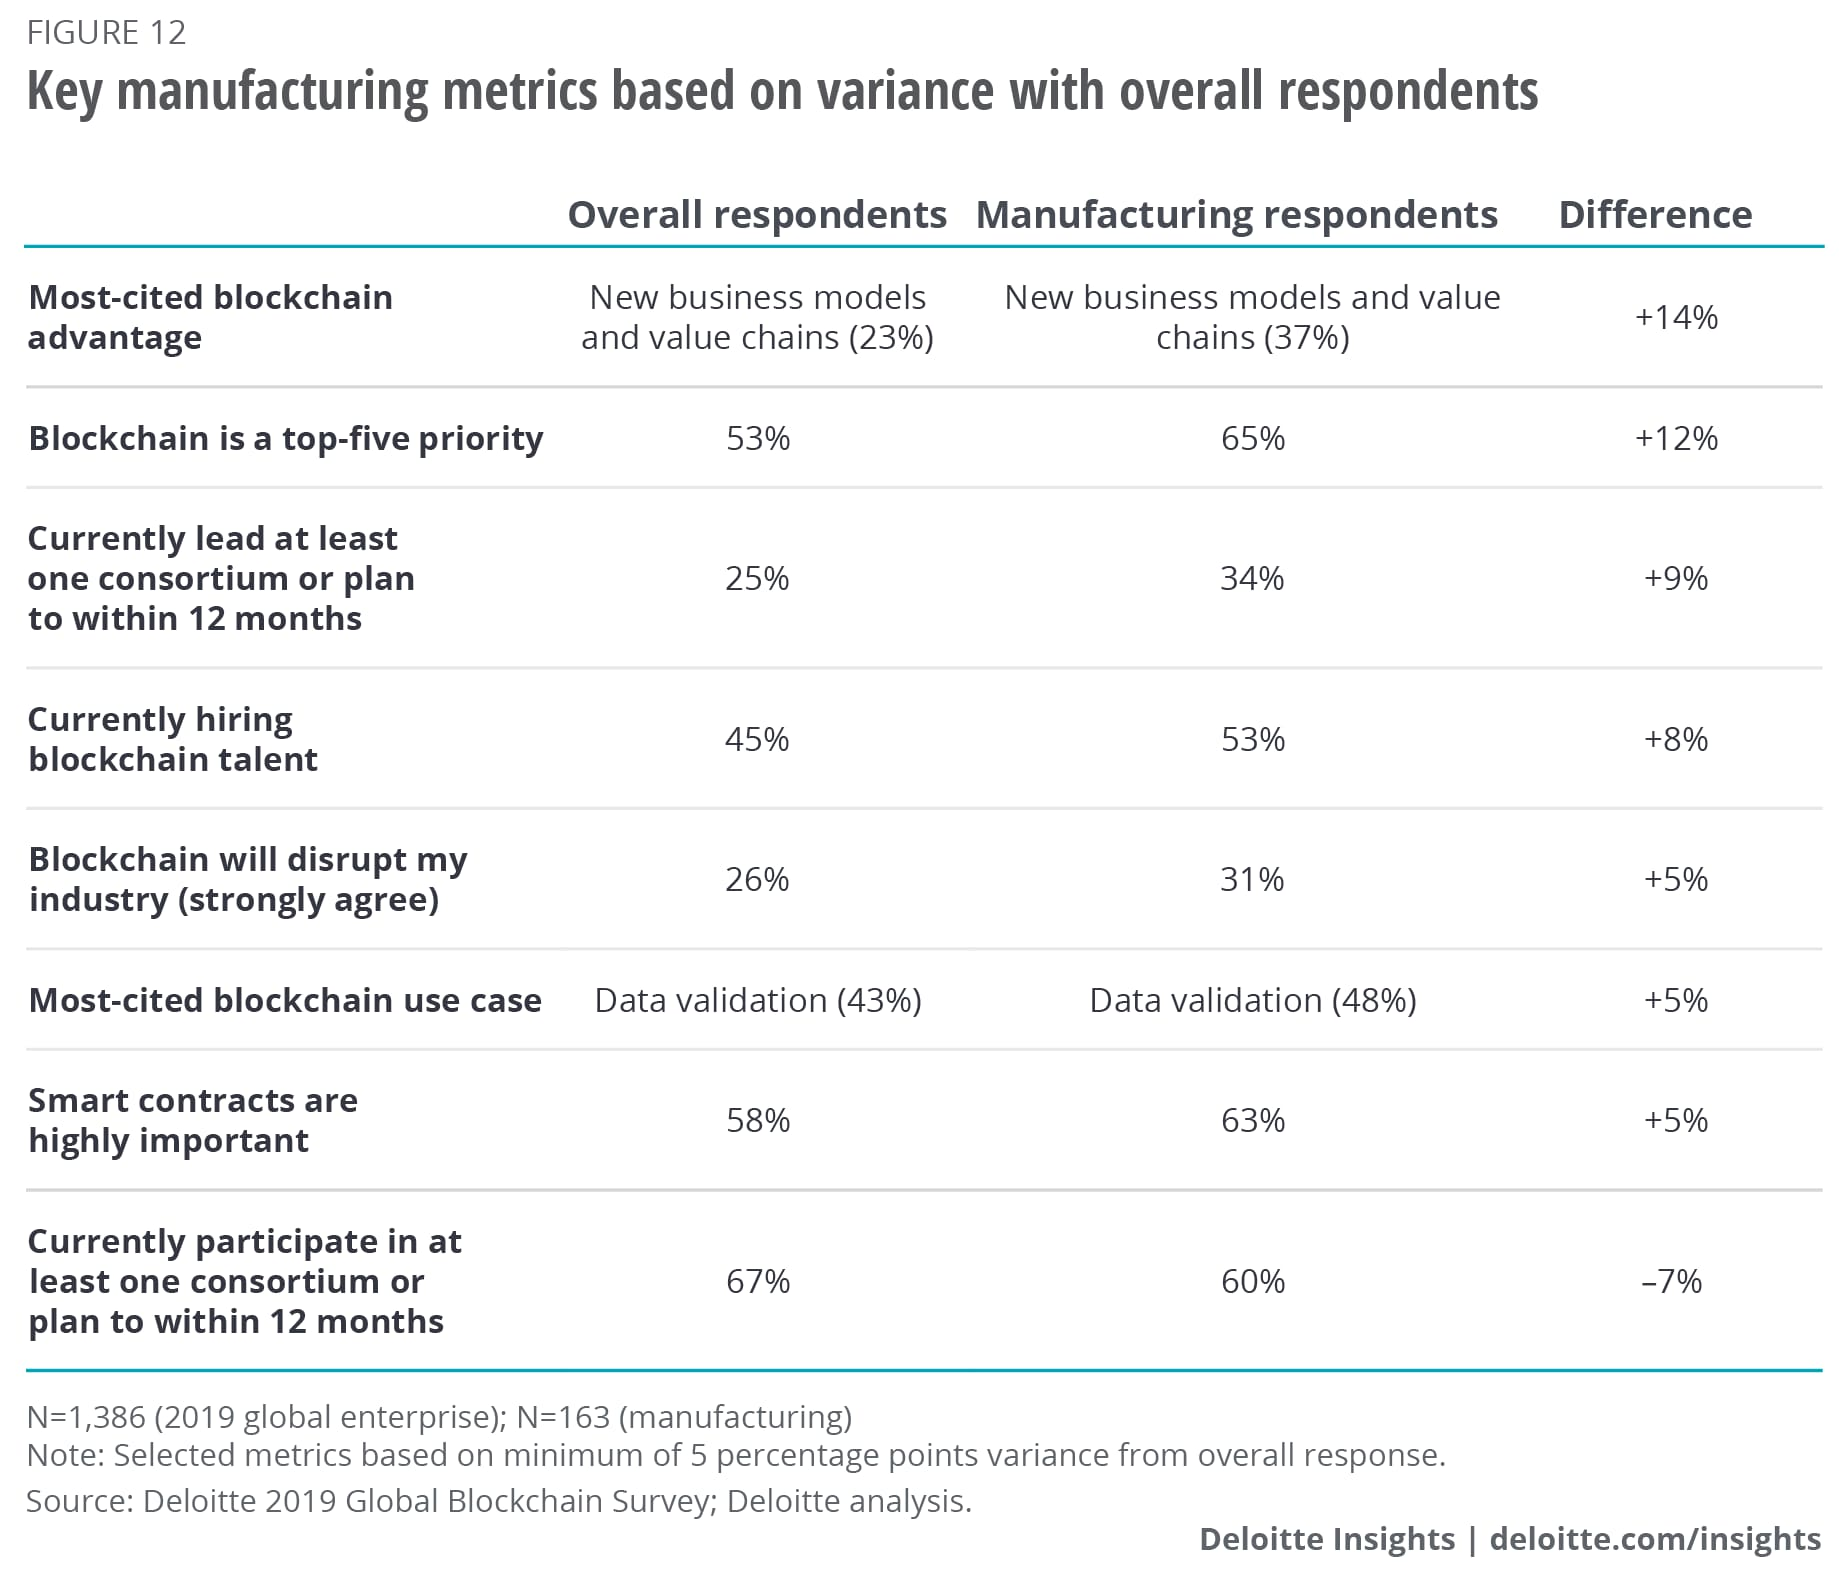 Key manufacturing metrics based on variance with overall respondents